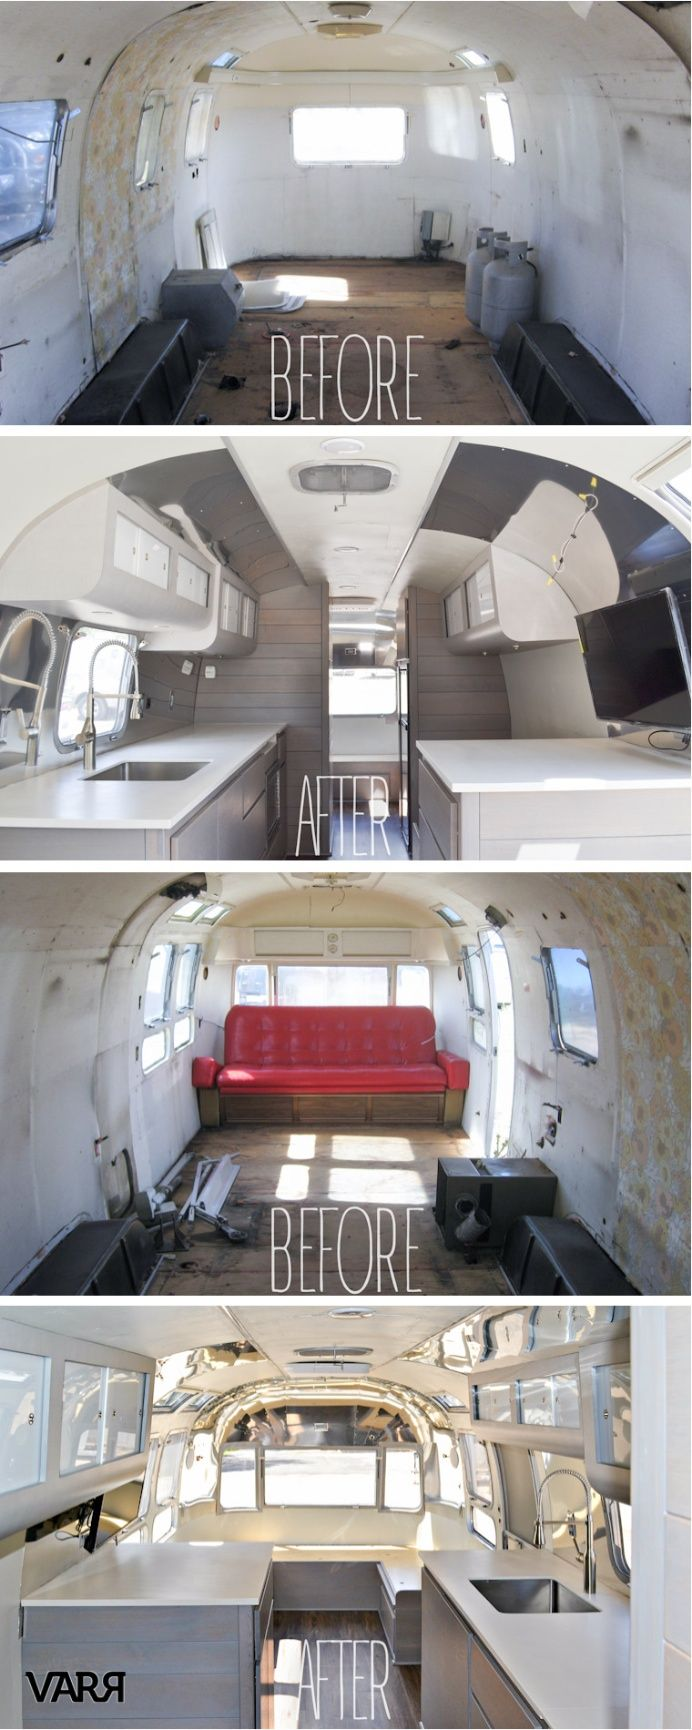 This 1975 Sovereign Airstream is on her way home to the Great State of Texas.